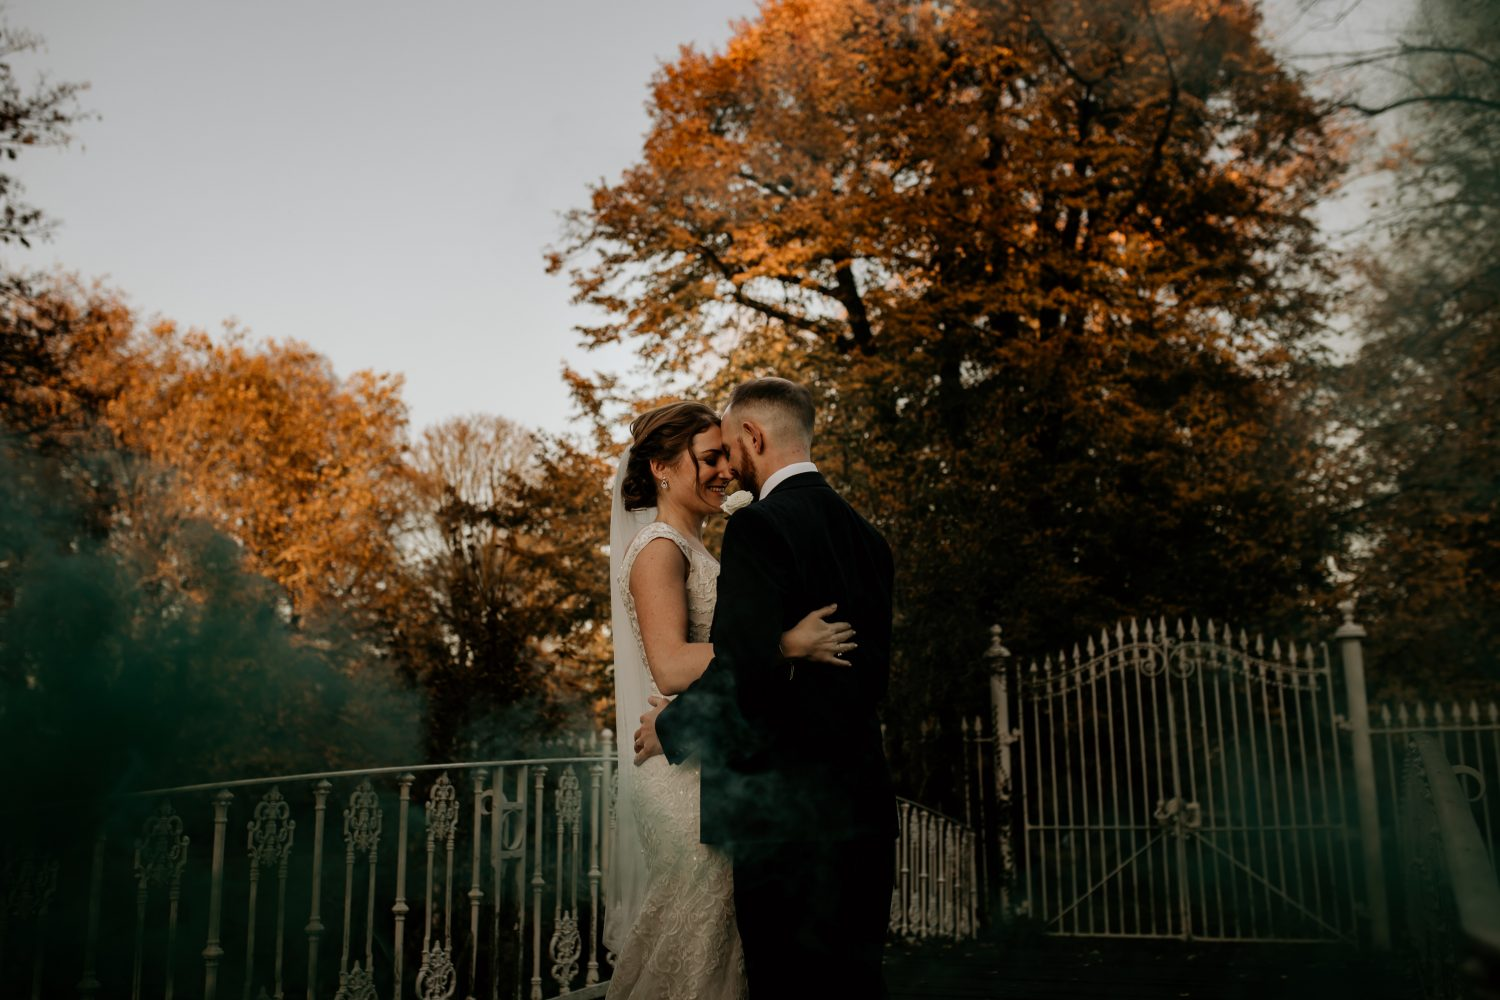 smiling bride and groom embrace in an autumn woodland setting